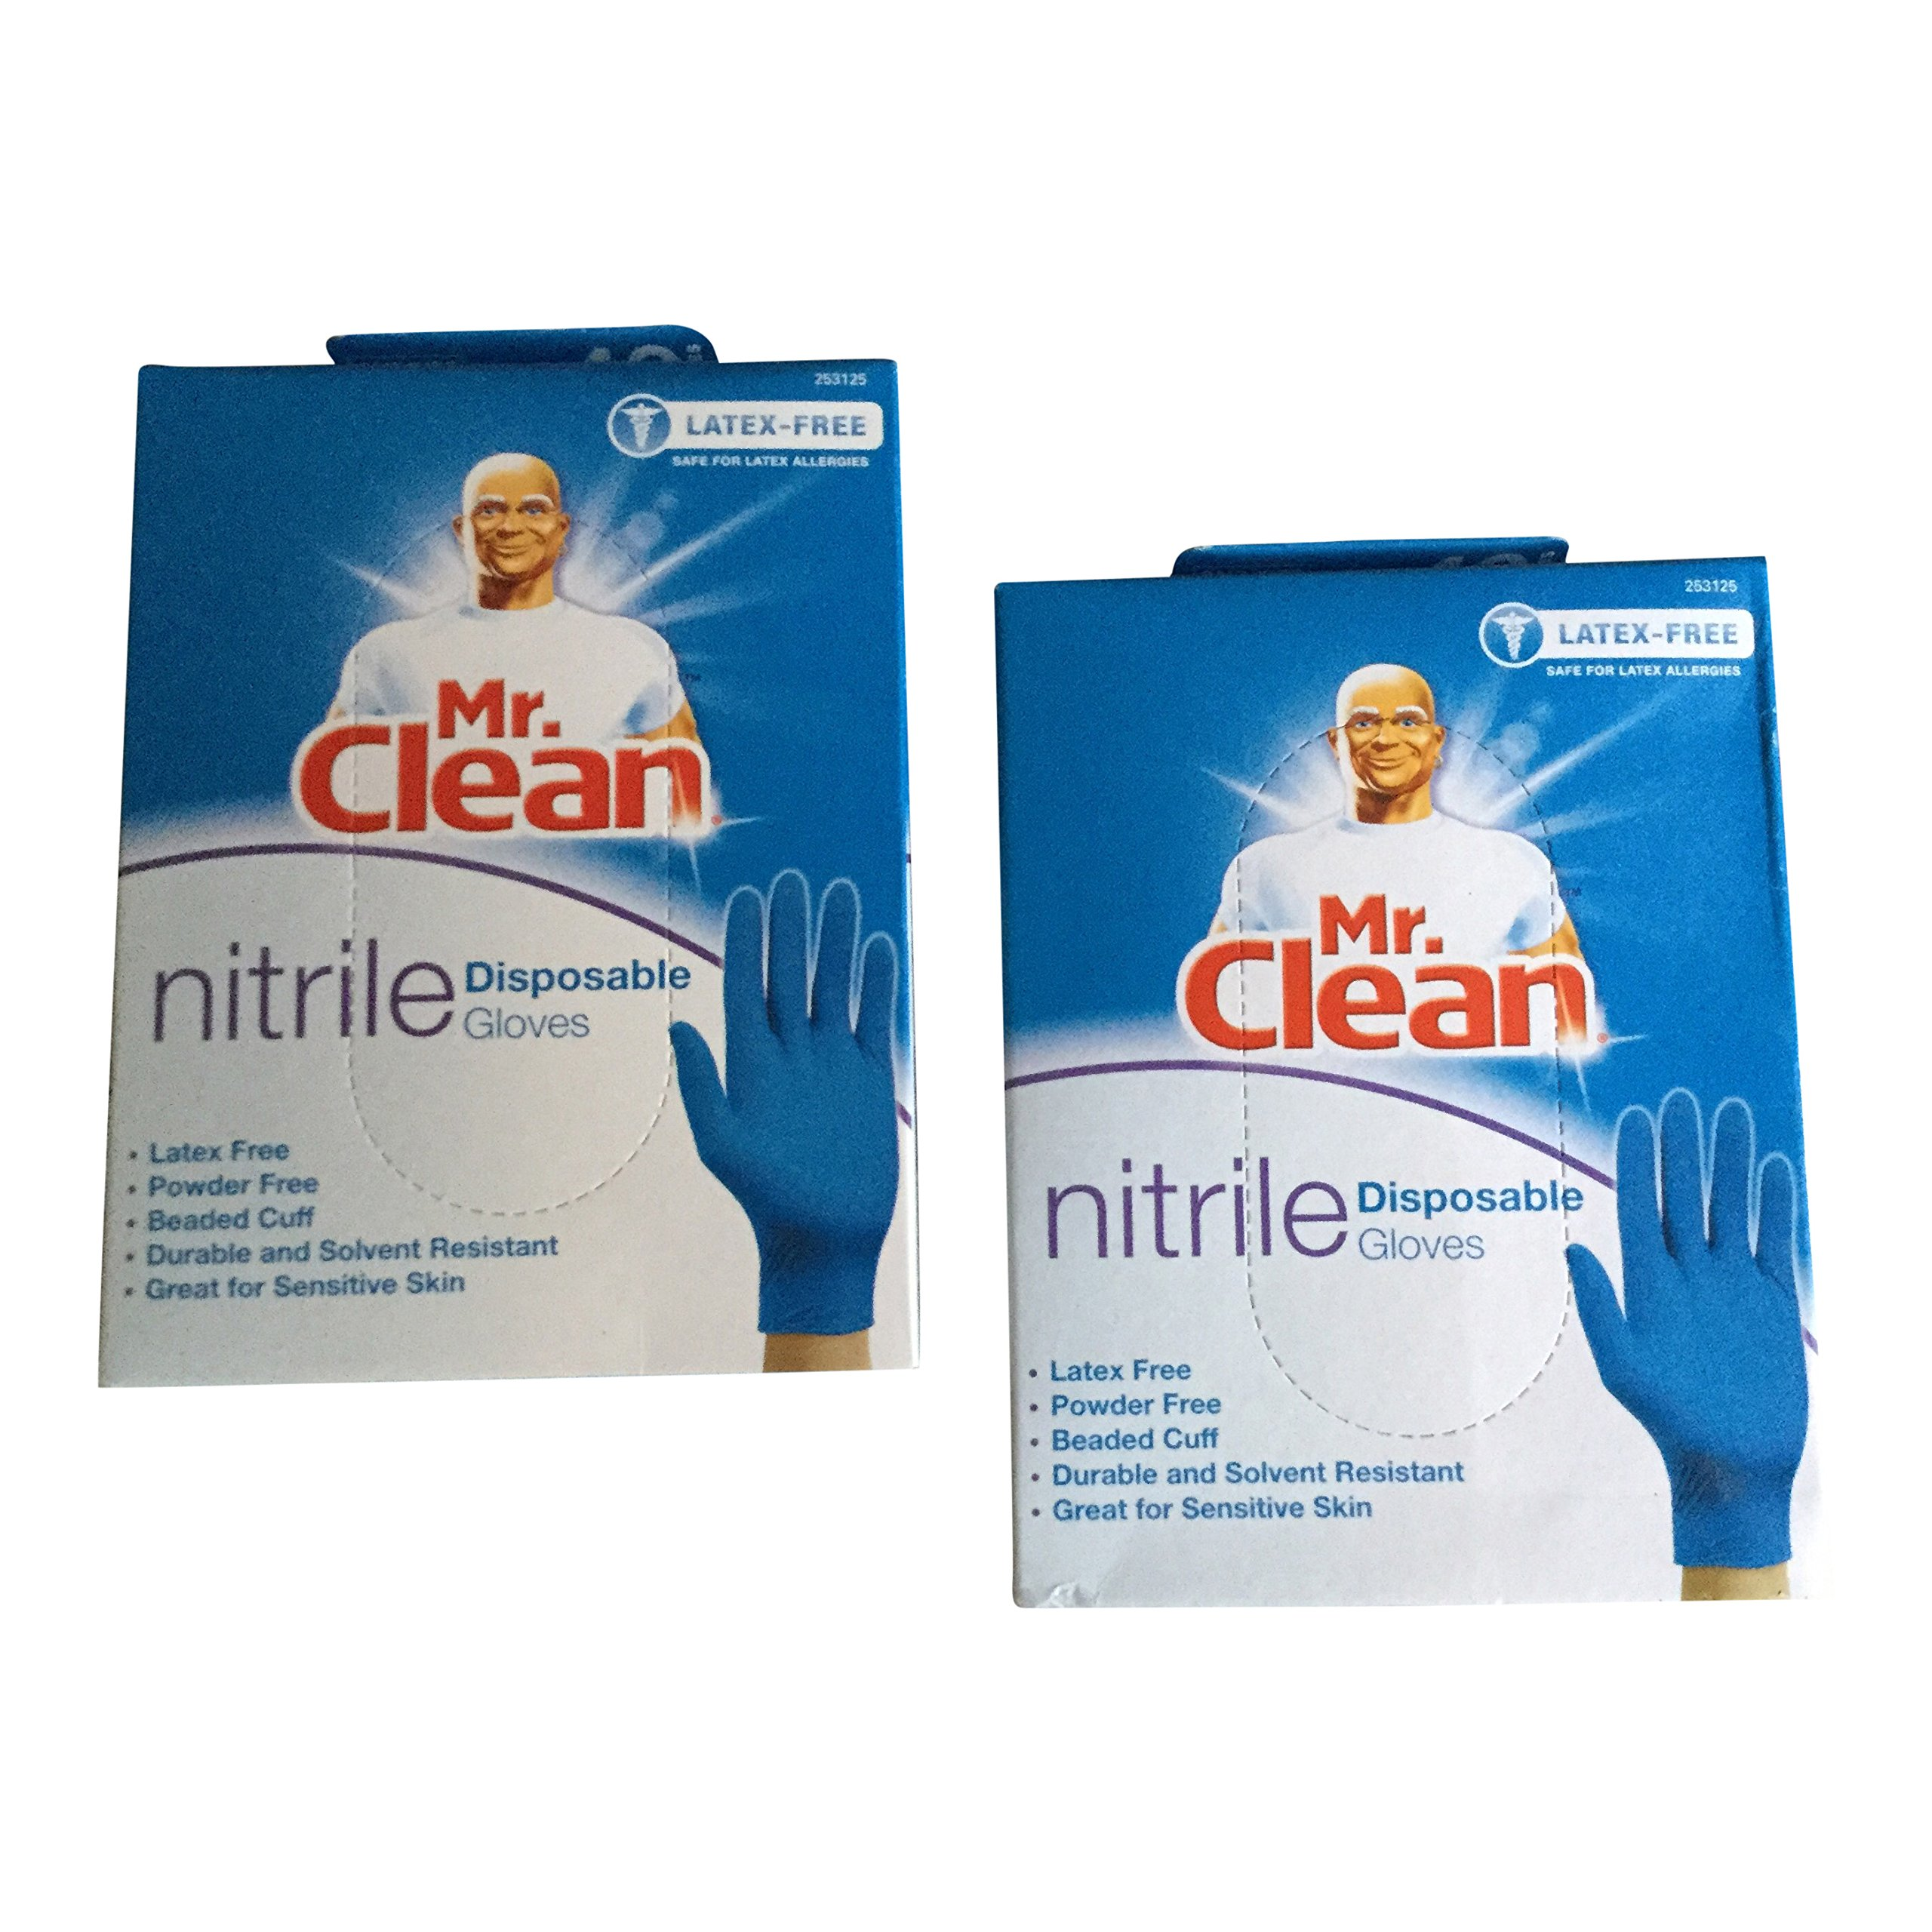 Mr. Clean Nitrile Disposable Gloves Latex Free & Powder Free (40 Gloves Per Box) (Pack of 2 Boxes)